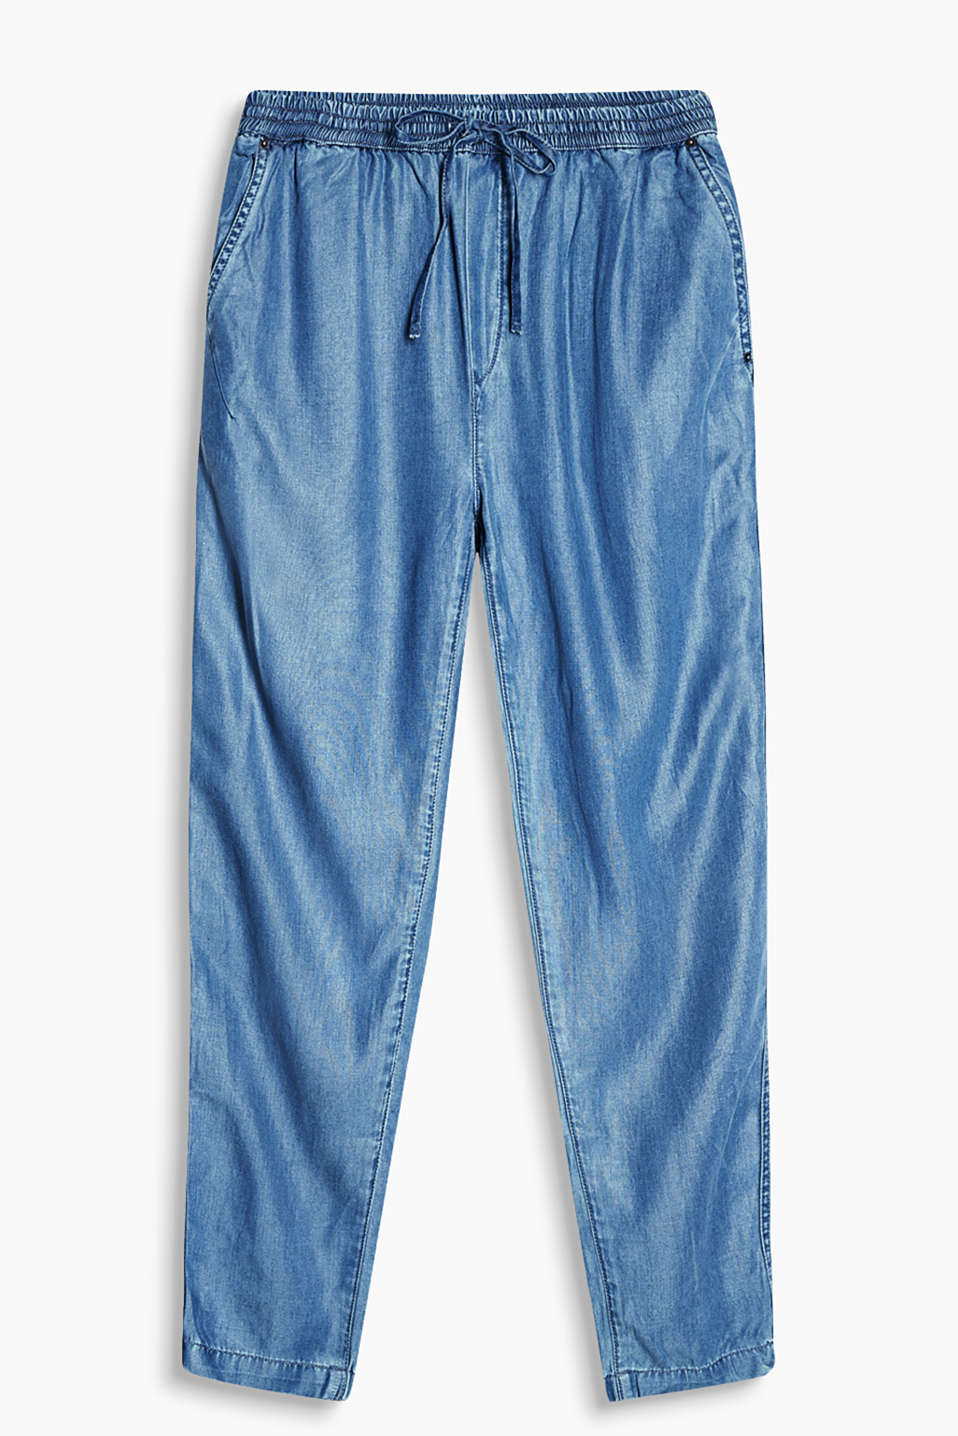 Sporty trousers in a summery denim style with comfortable elasticated cuffs